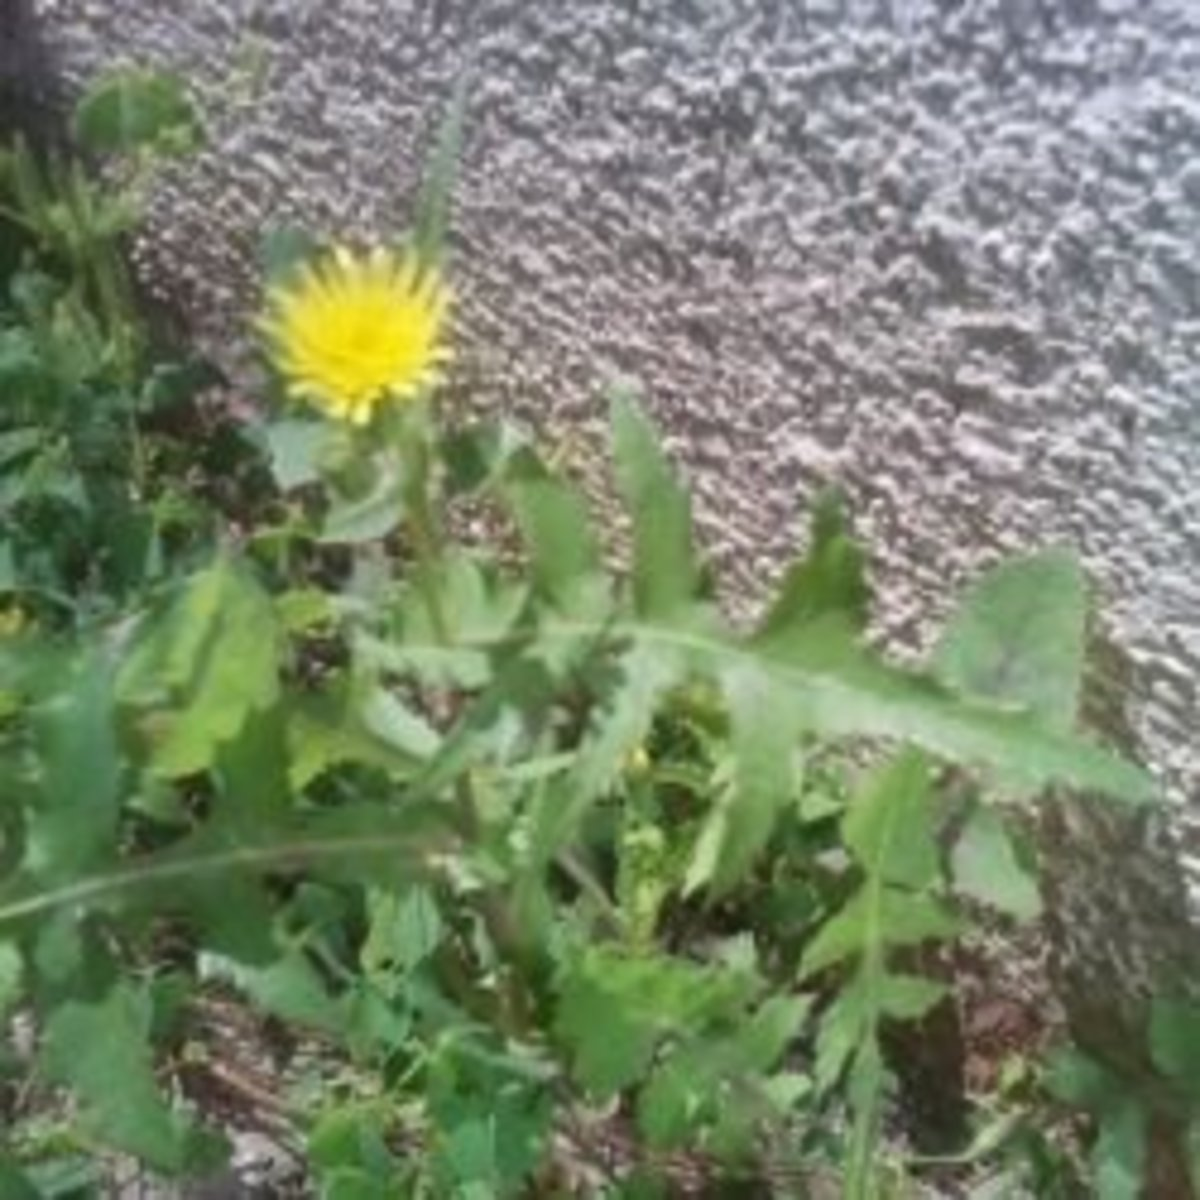 Sow thistles - A nutritious edible weed